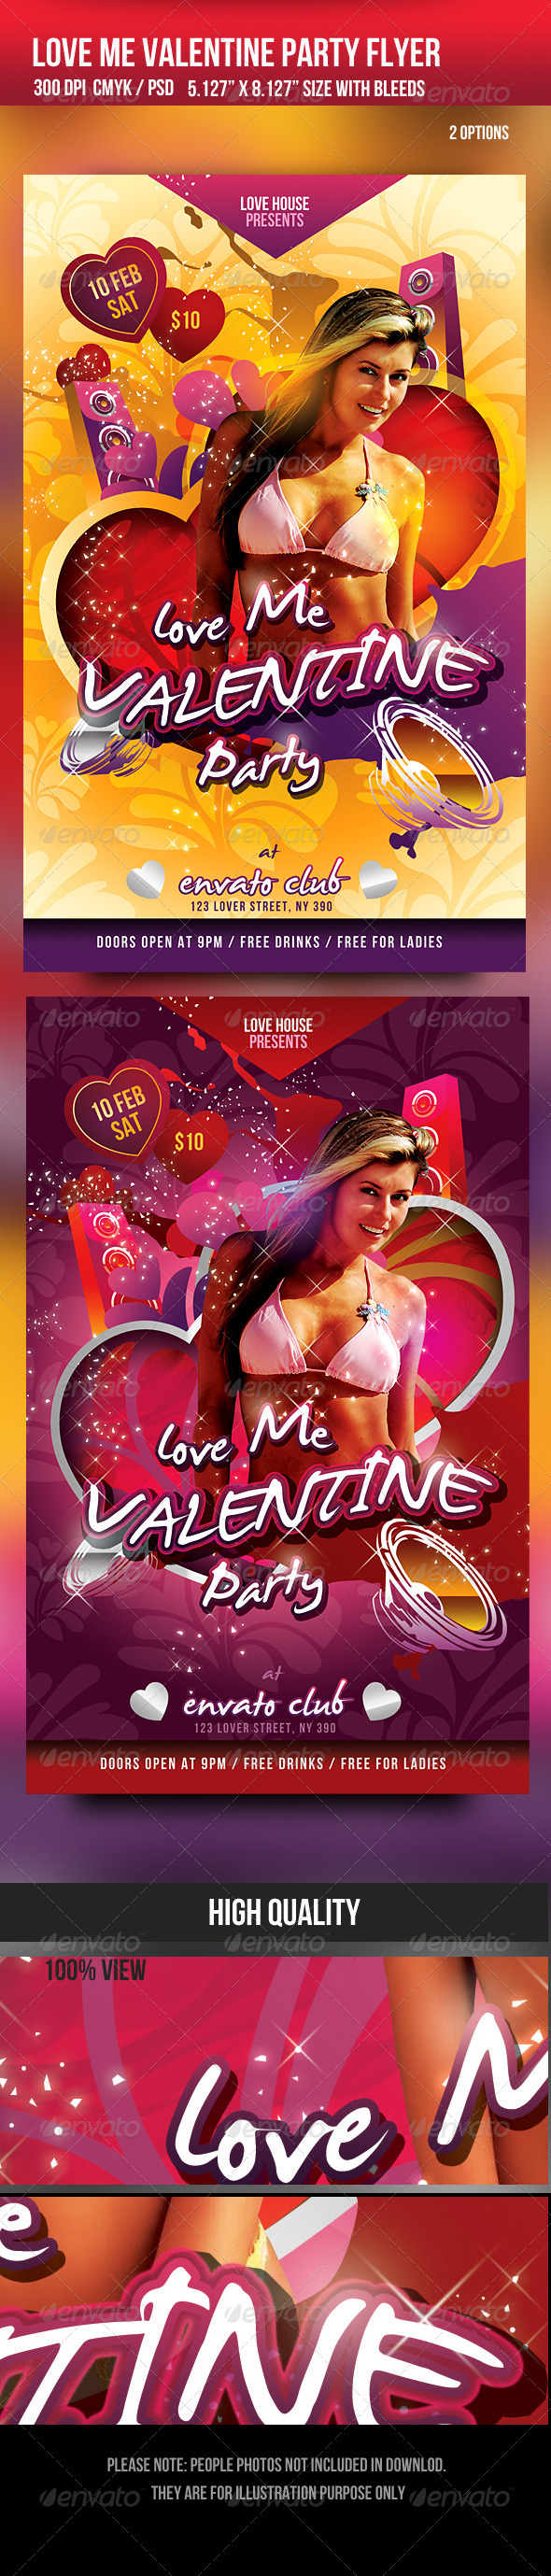 Love me Valentine Day Party Flyer - Clubs & Parties Events